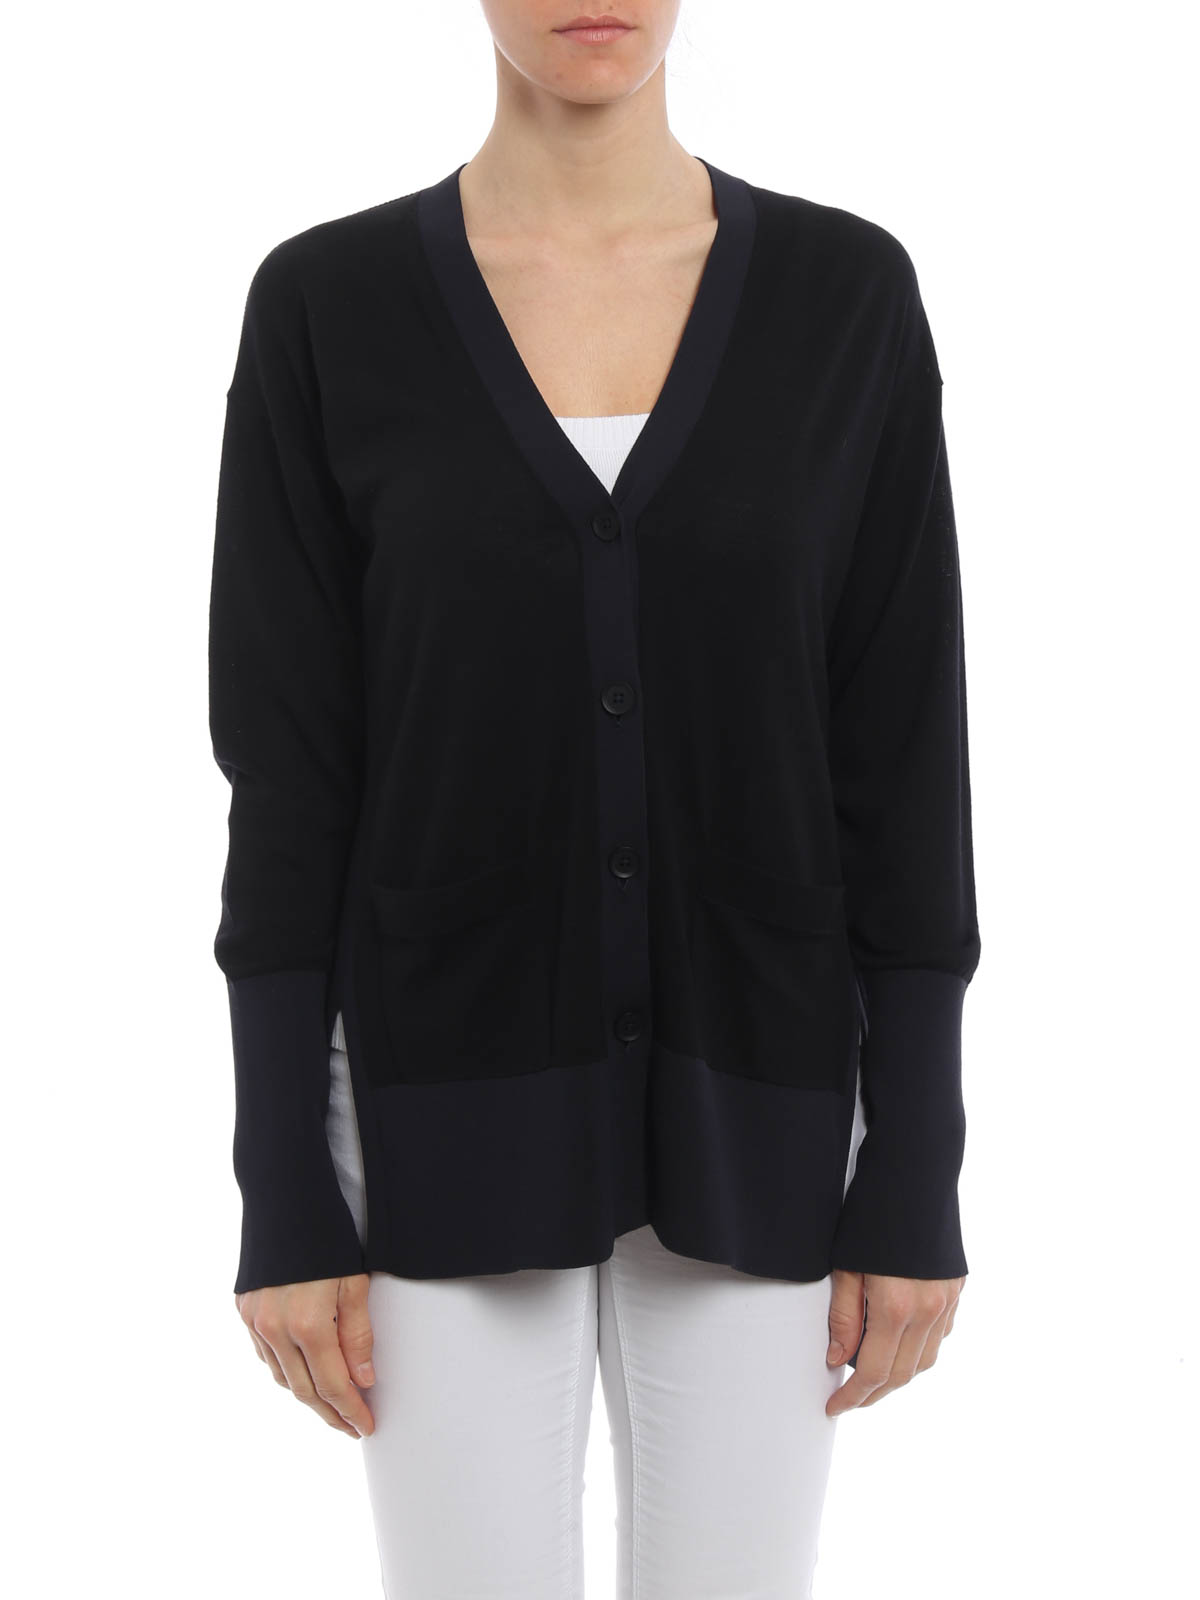 Back cut out wool cardigan by Dkny - cardigans | iKRIX